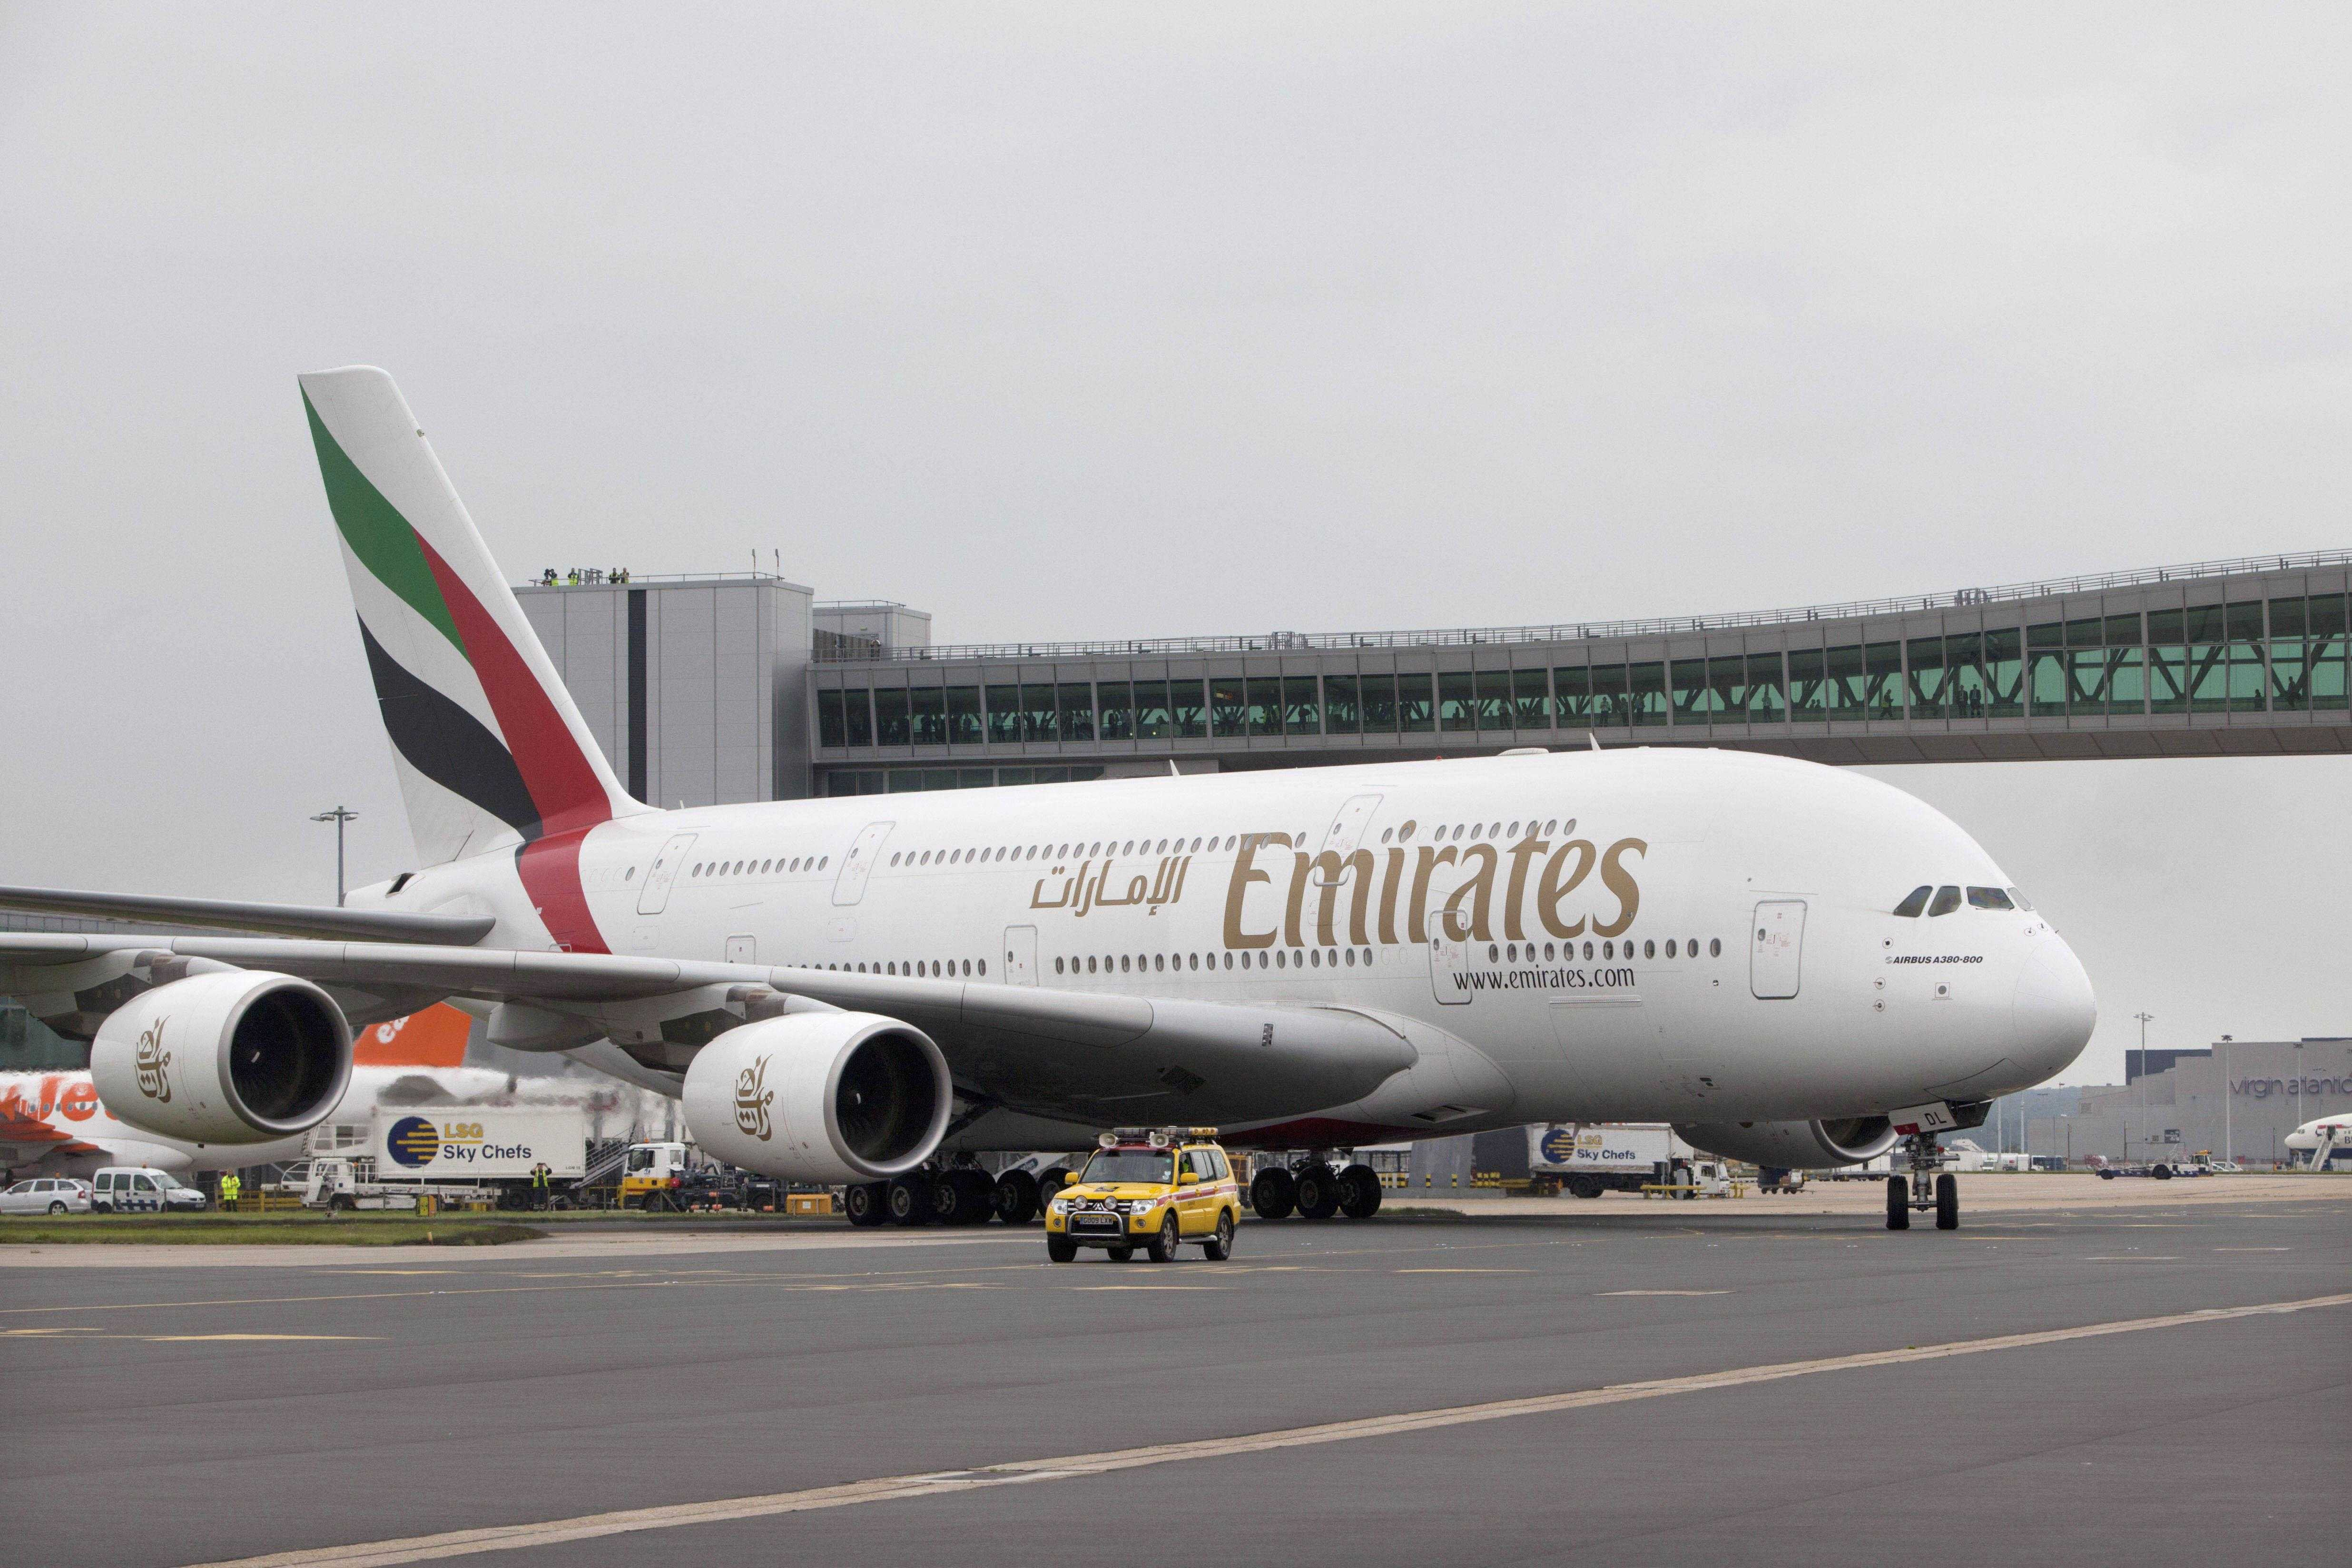 Emirates A380 in front of Pier 6 at Gatwick Airport